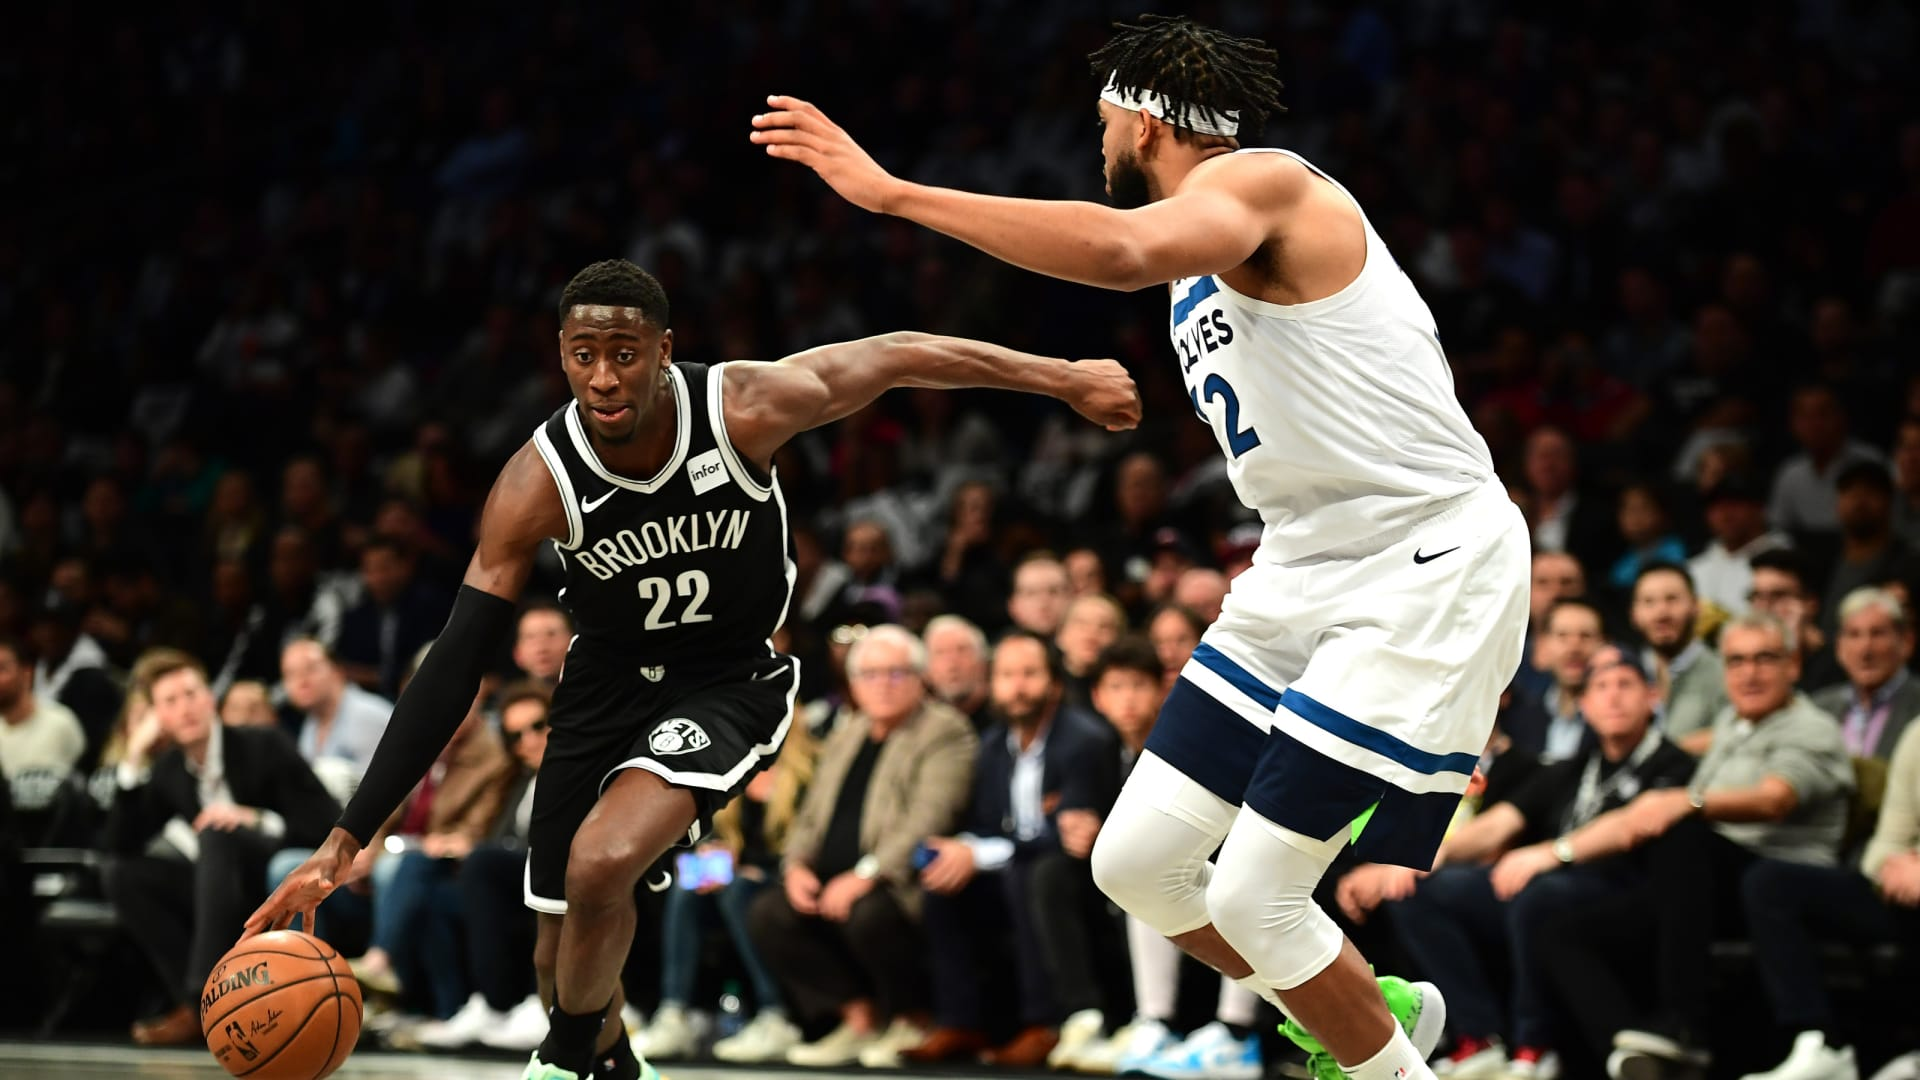 Minnesota Timberwolves: Checking in on the Nets draft pick